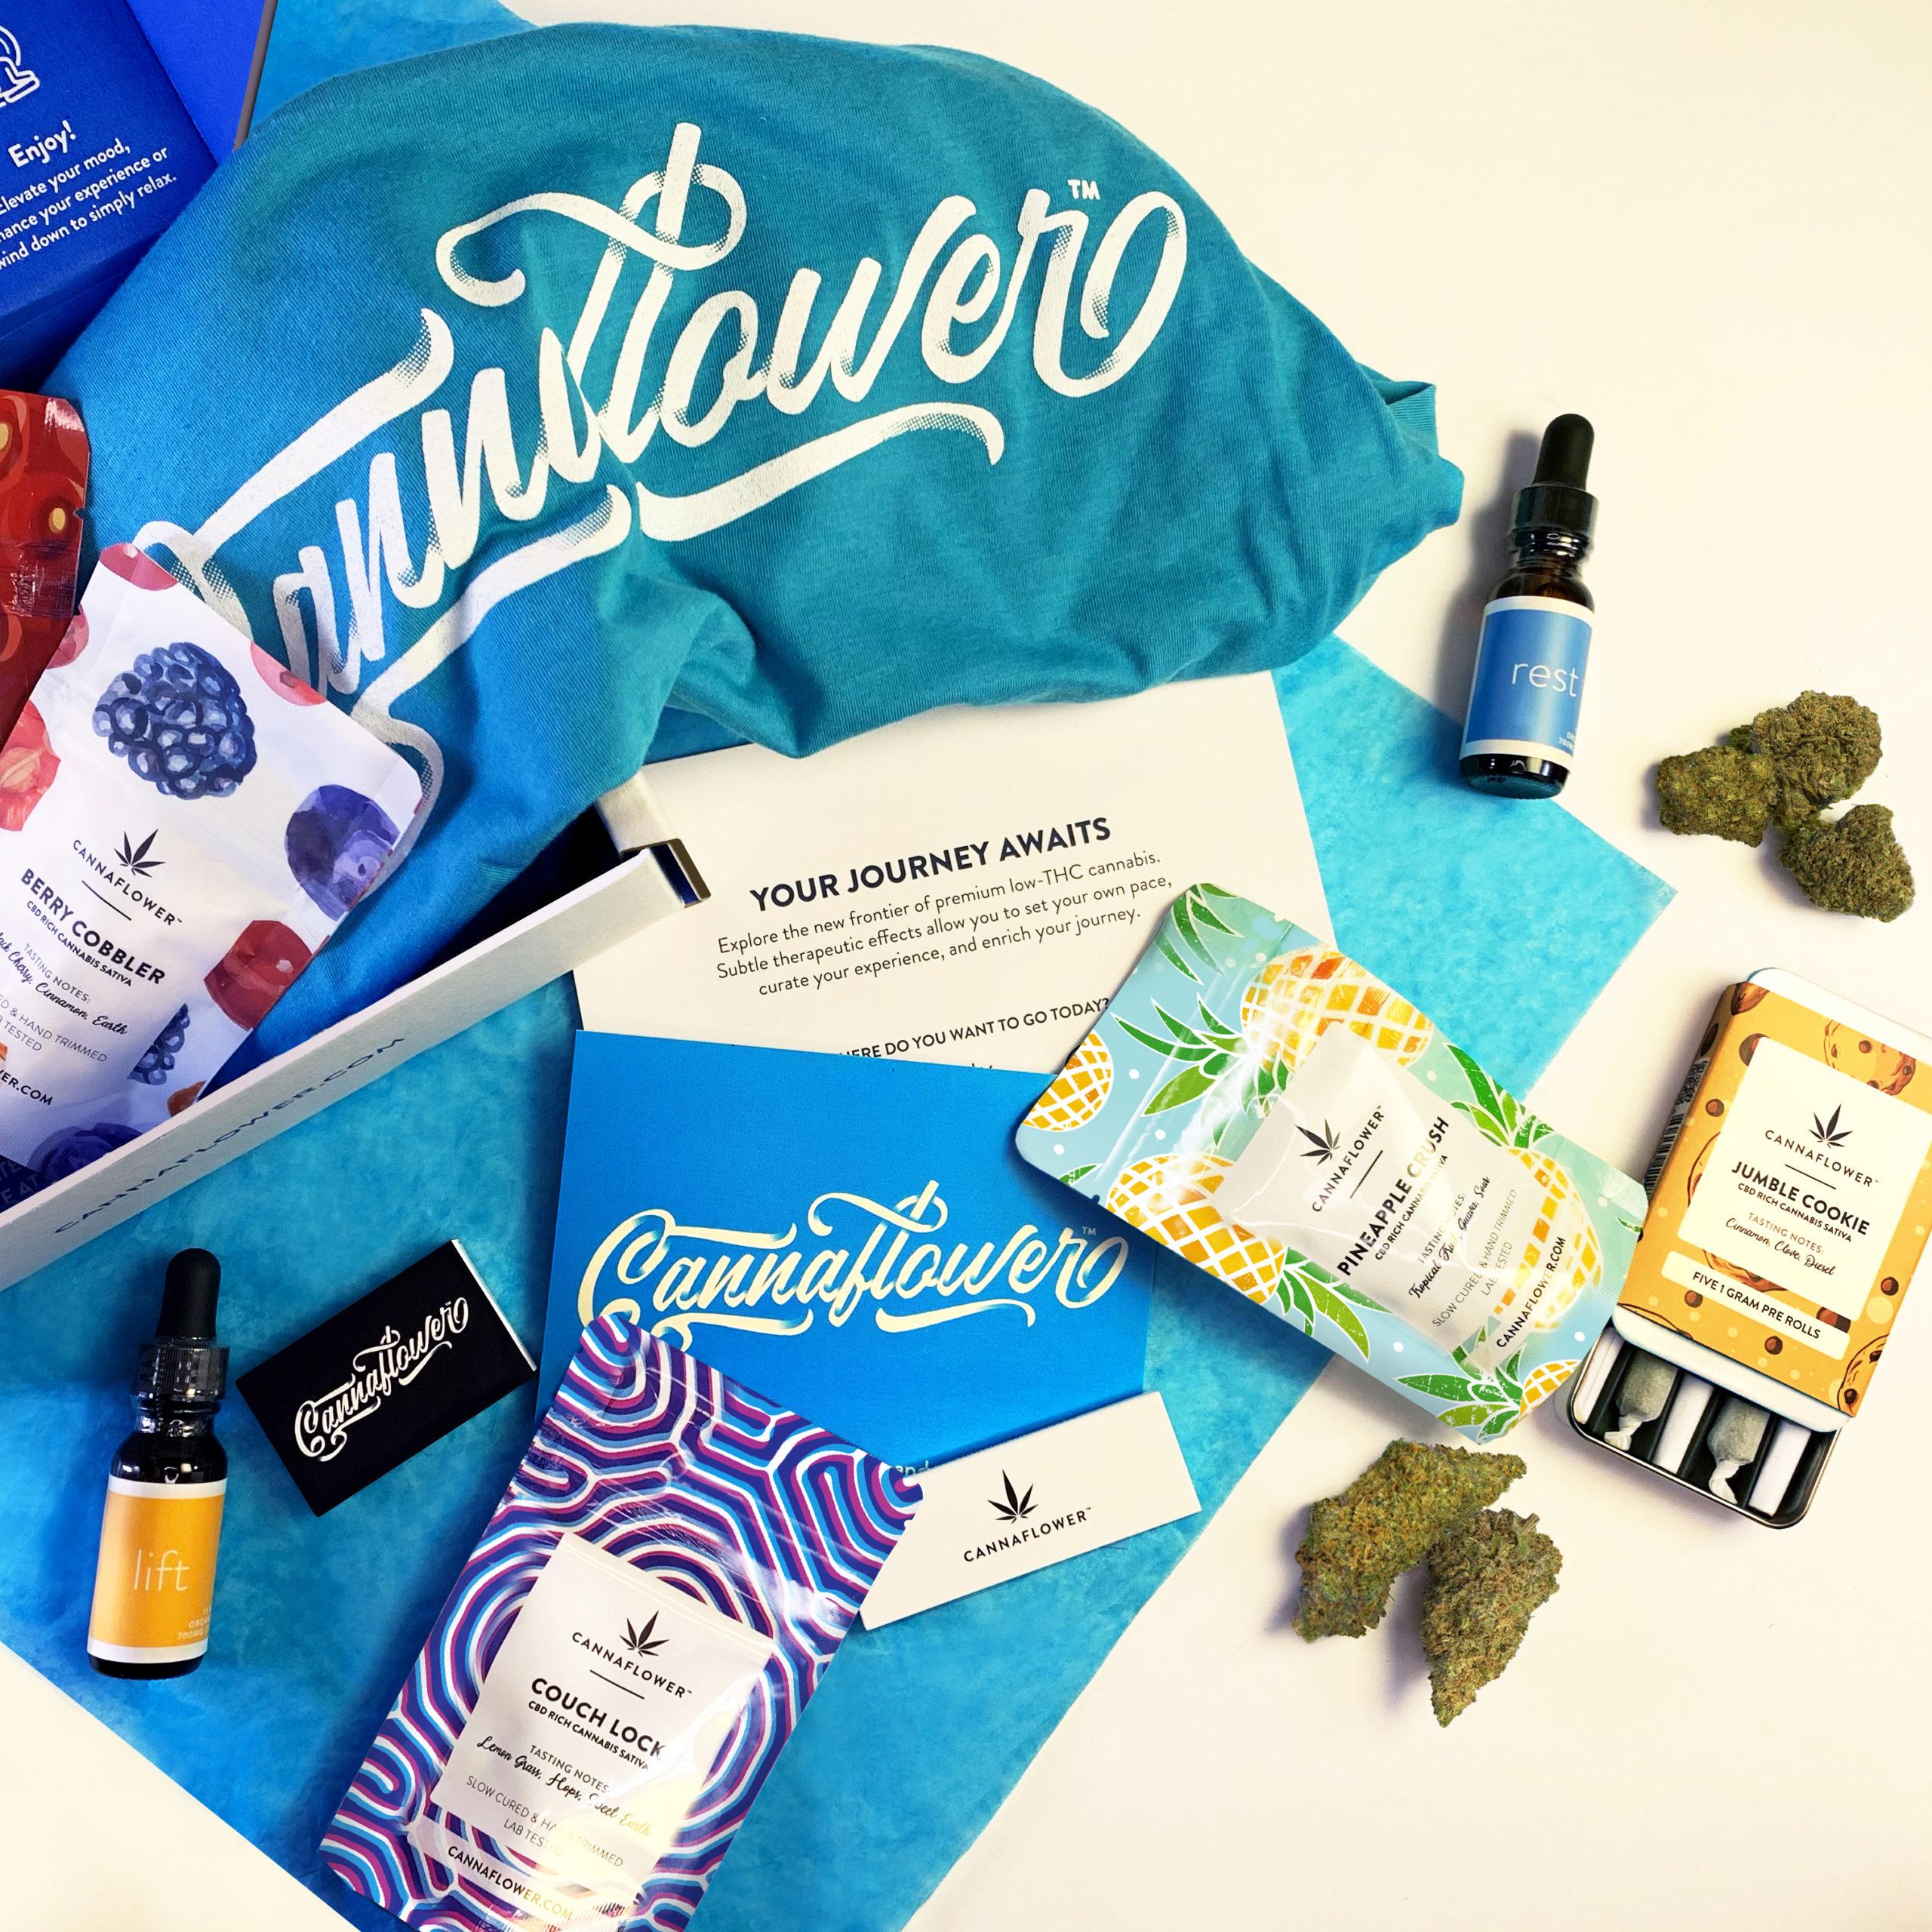 Cannaflower Subscription Box Featured